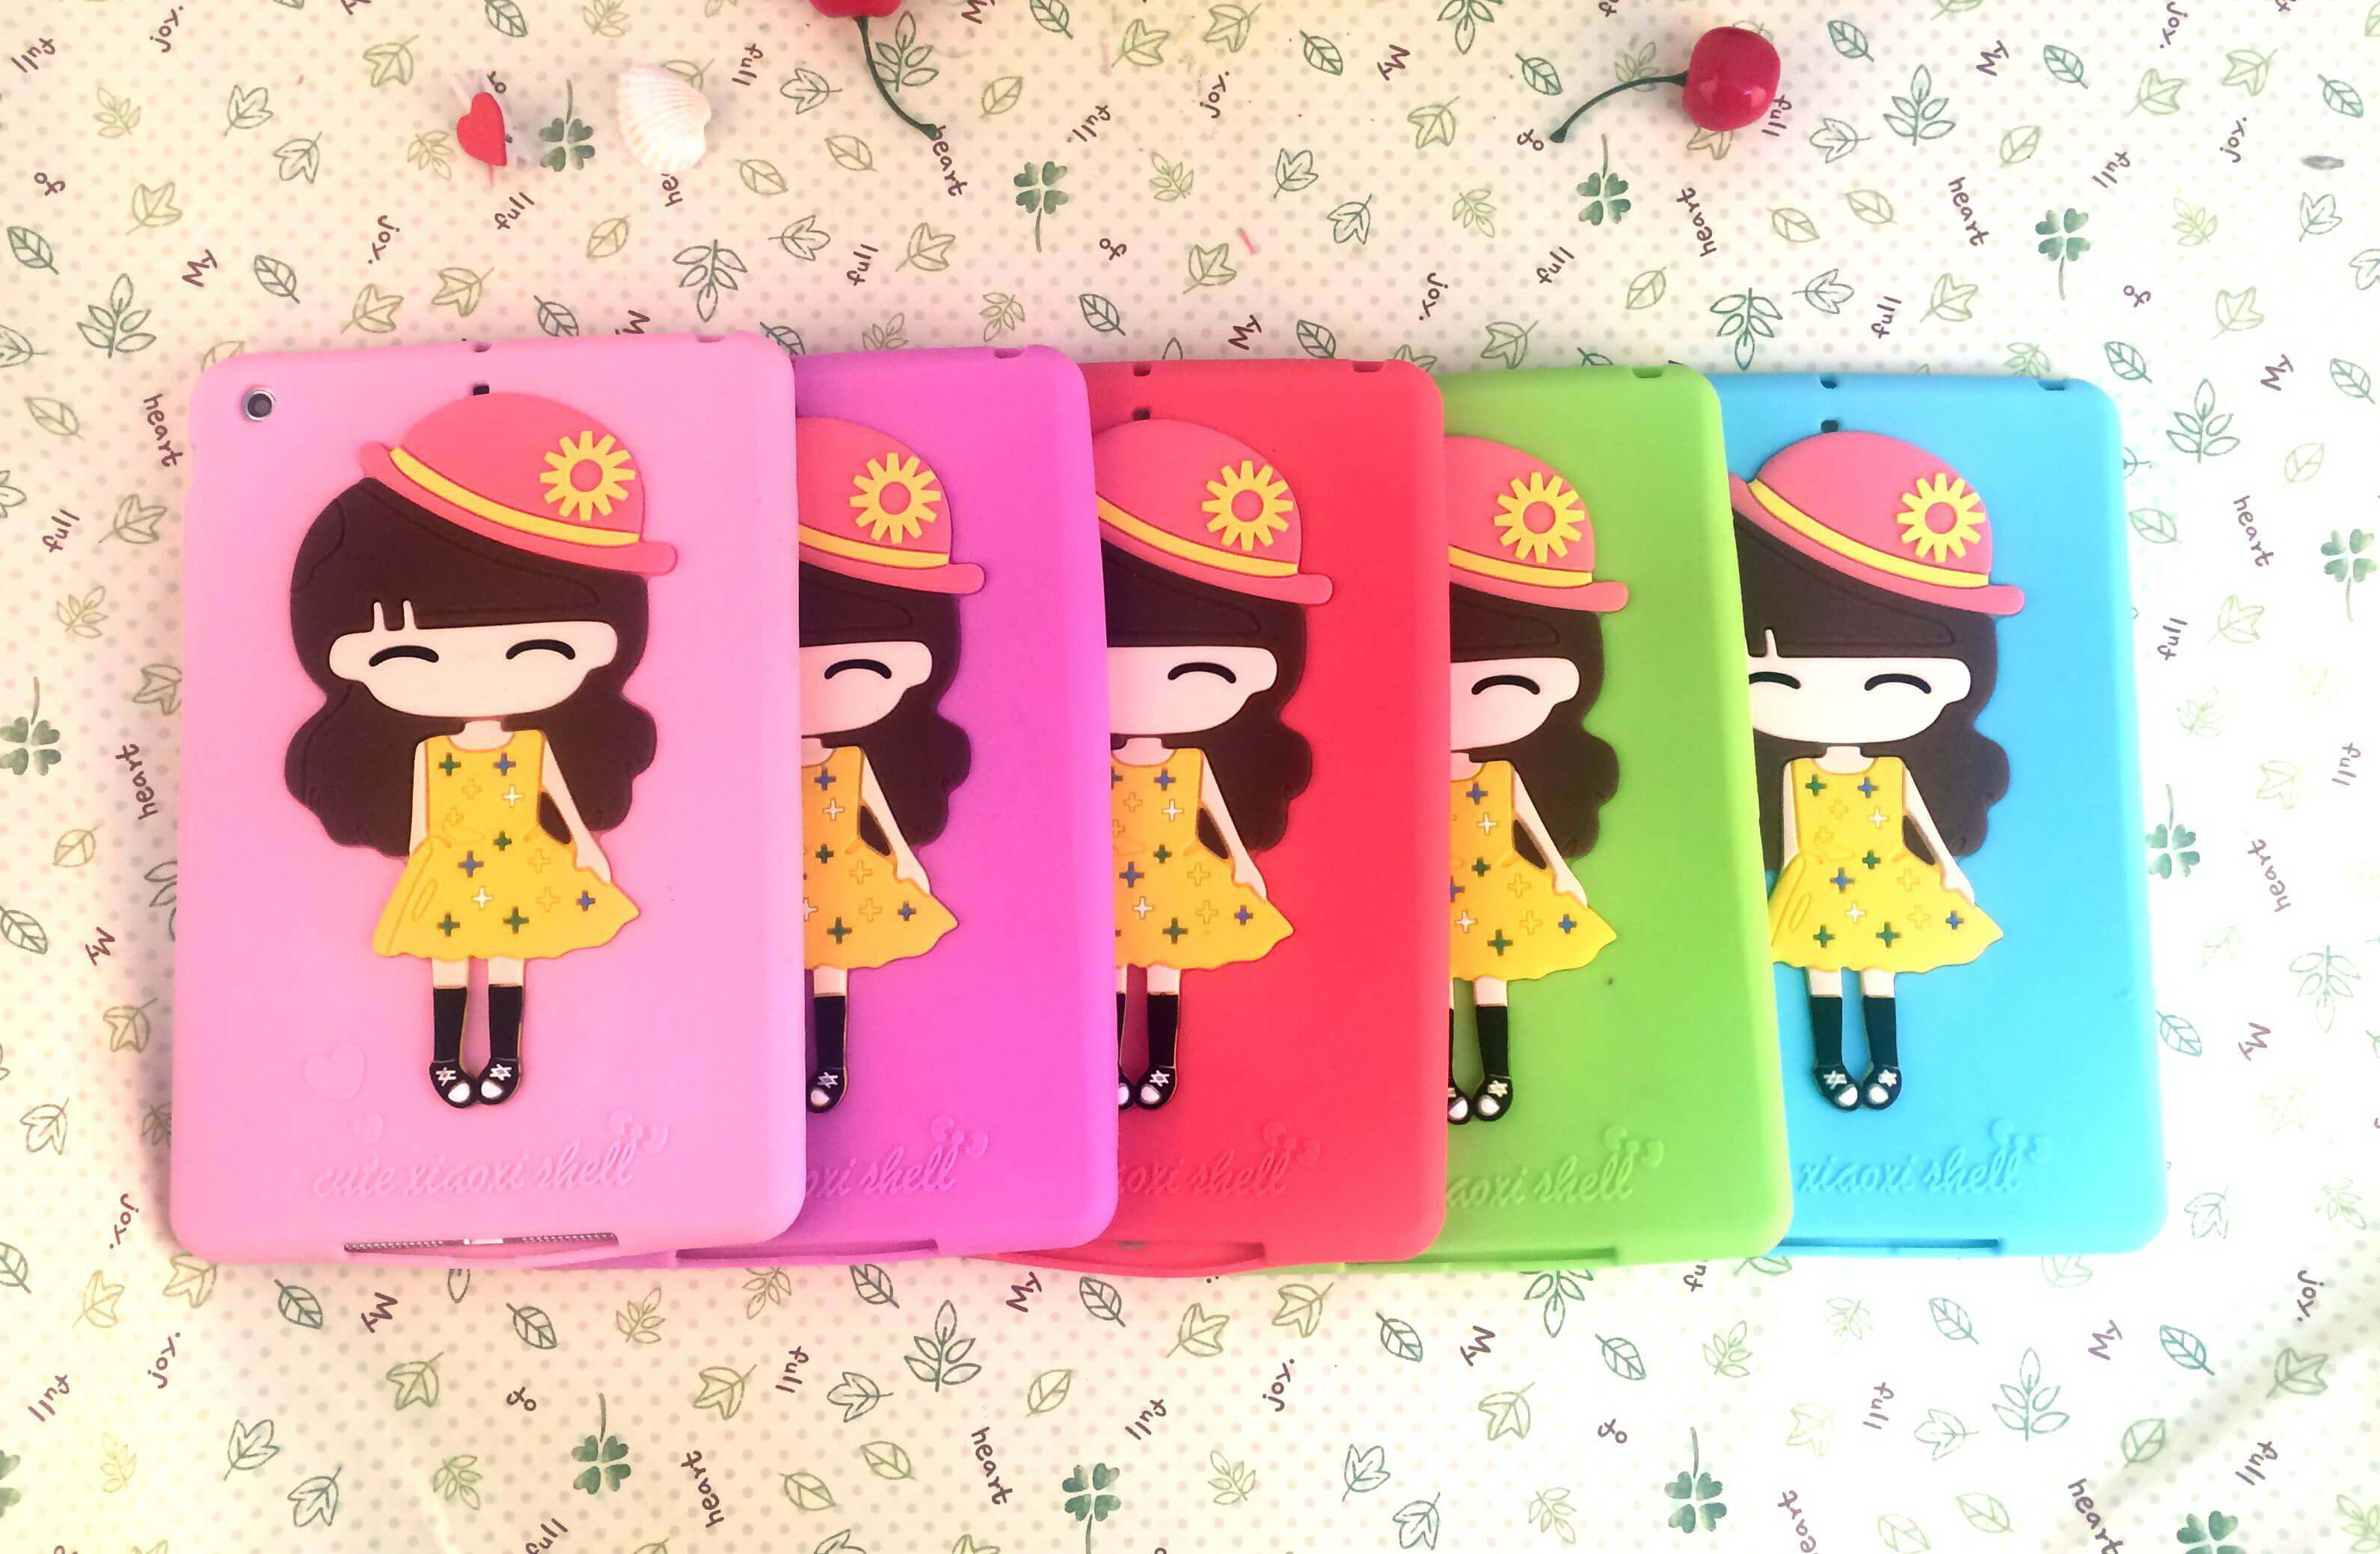 Silicone cover with picture of cute girl for Apple iPad 2, iPad 3, iPad 4, Apple iPad Mini 1, iPad Mini 2, iPad Mini 3